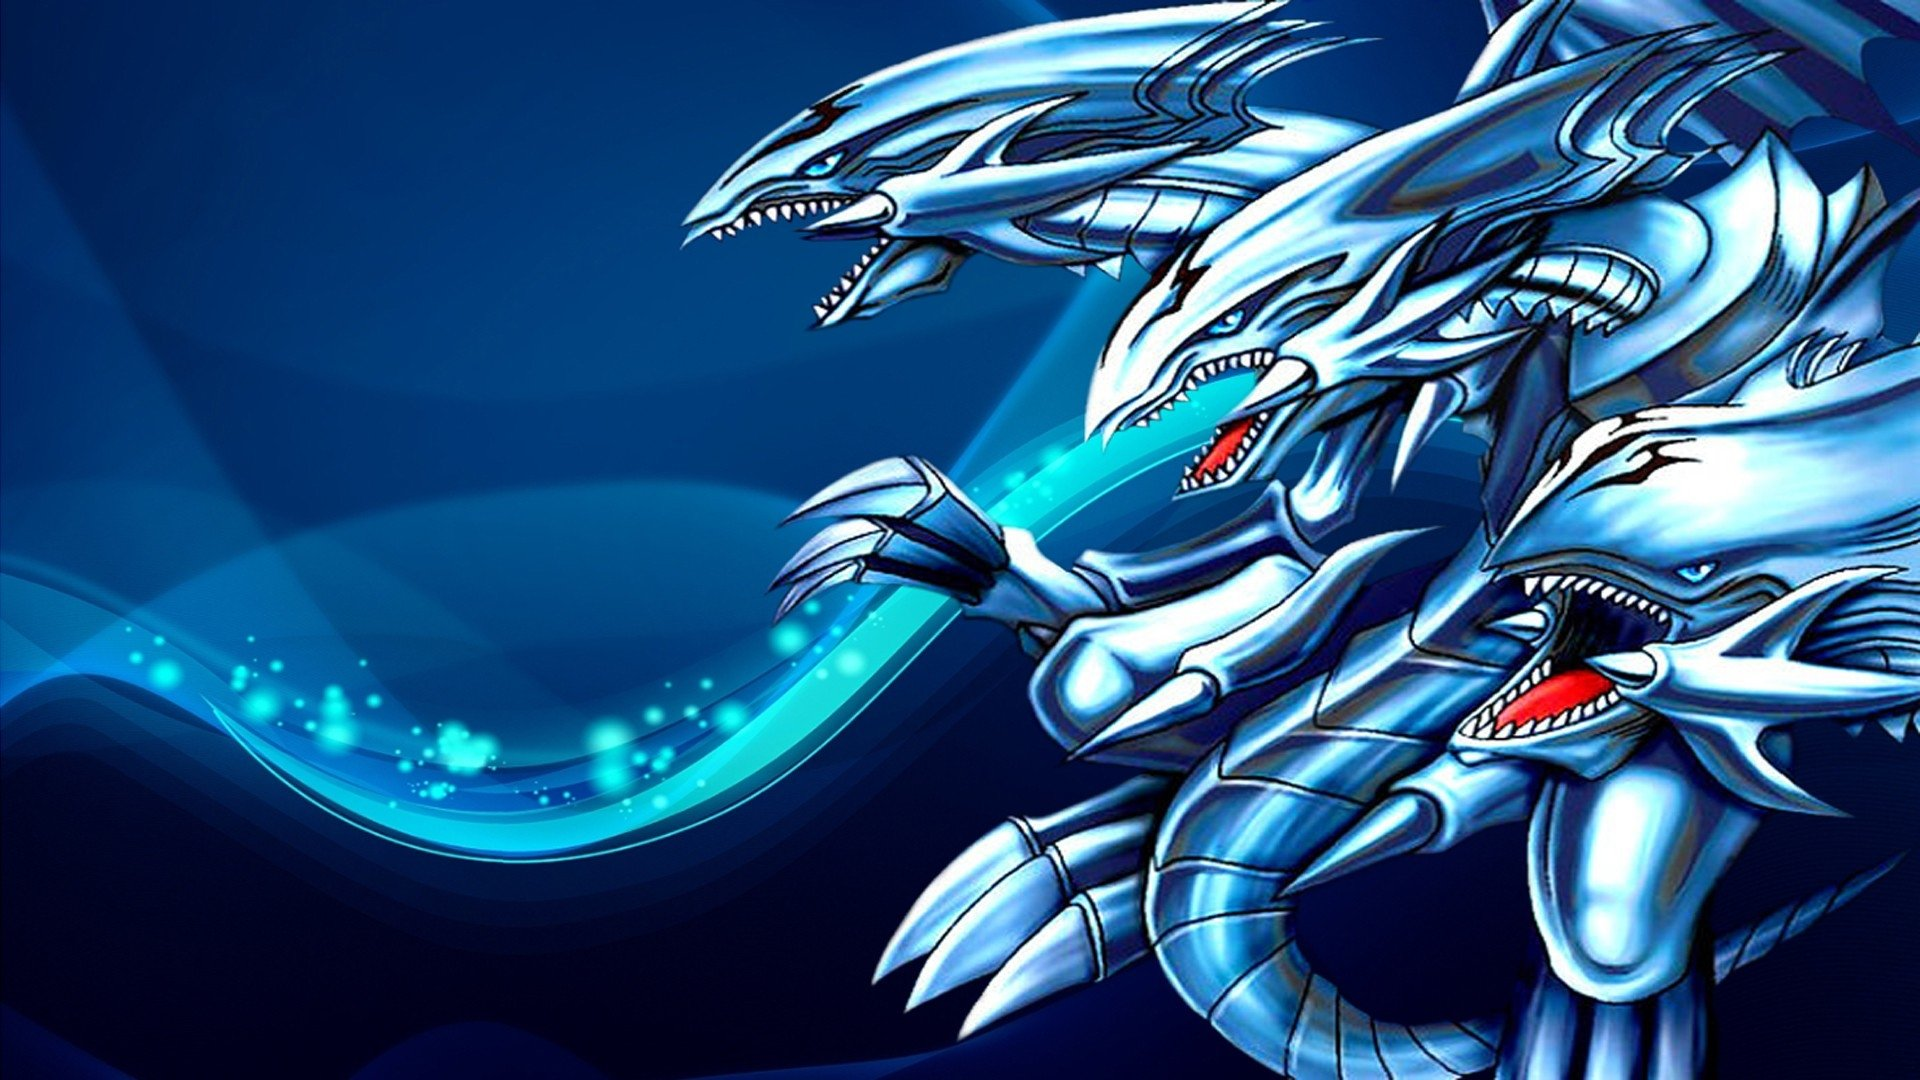 78 Yu Gi Oh HD Wallpapers Background Images 1920x1080